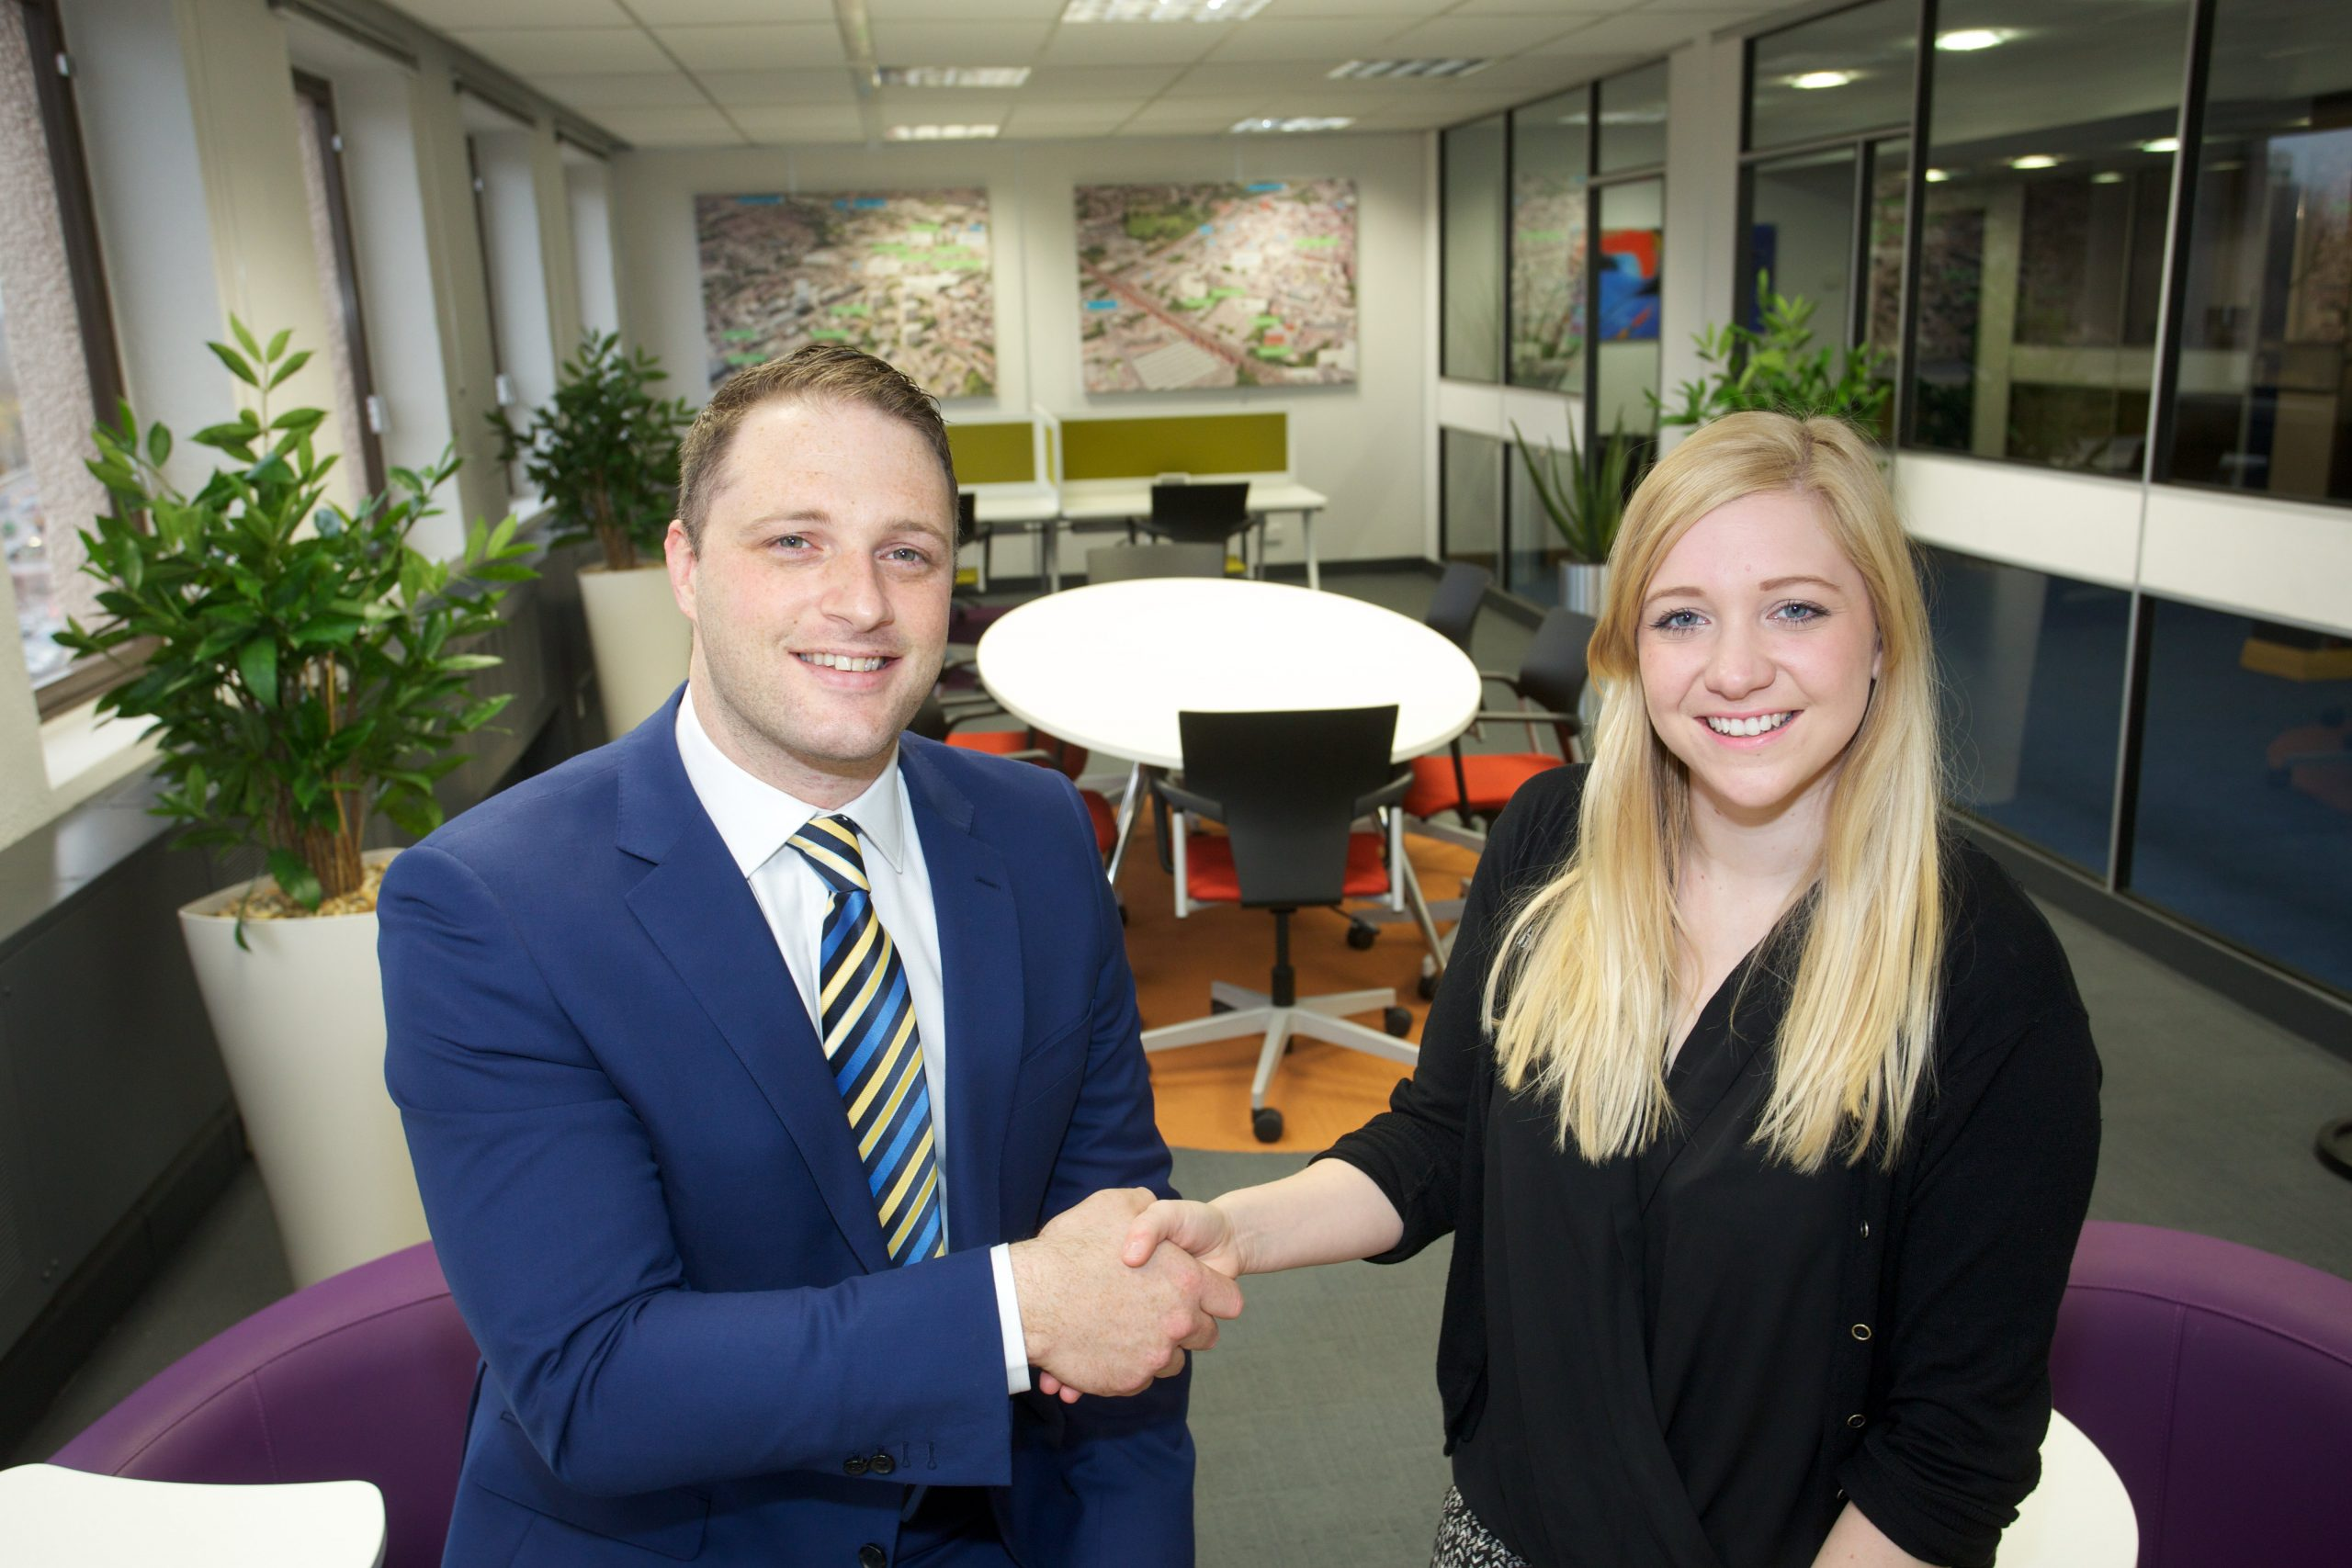 Rick Yates, Director of Sales at Distology and Orbit Developments Marketing Manager Claire Stott